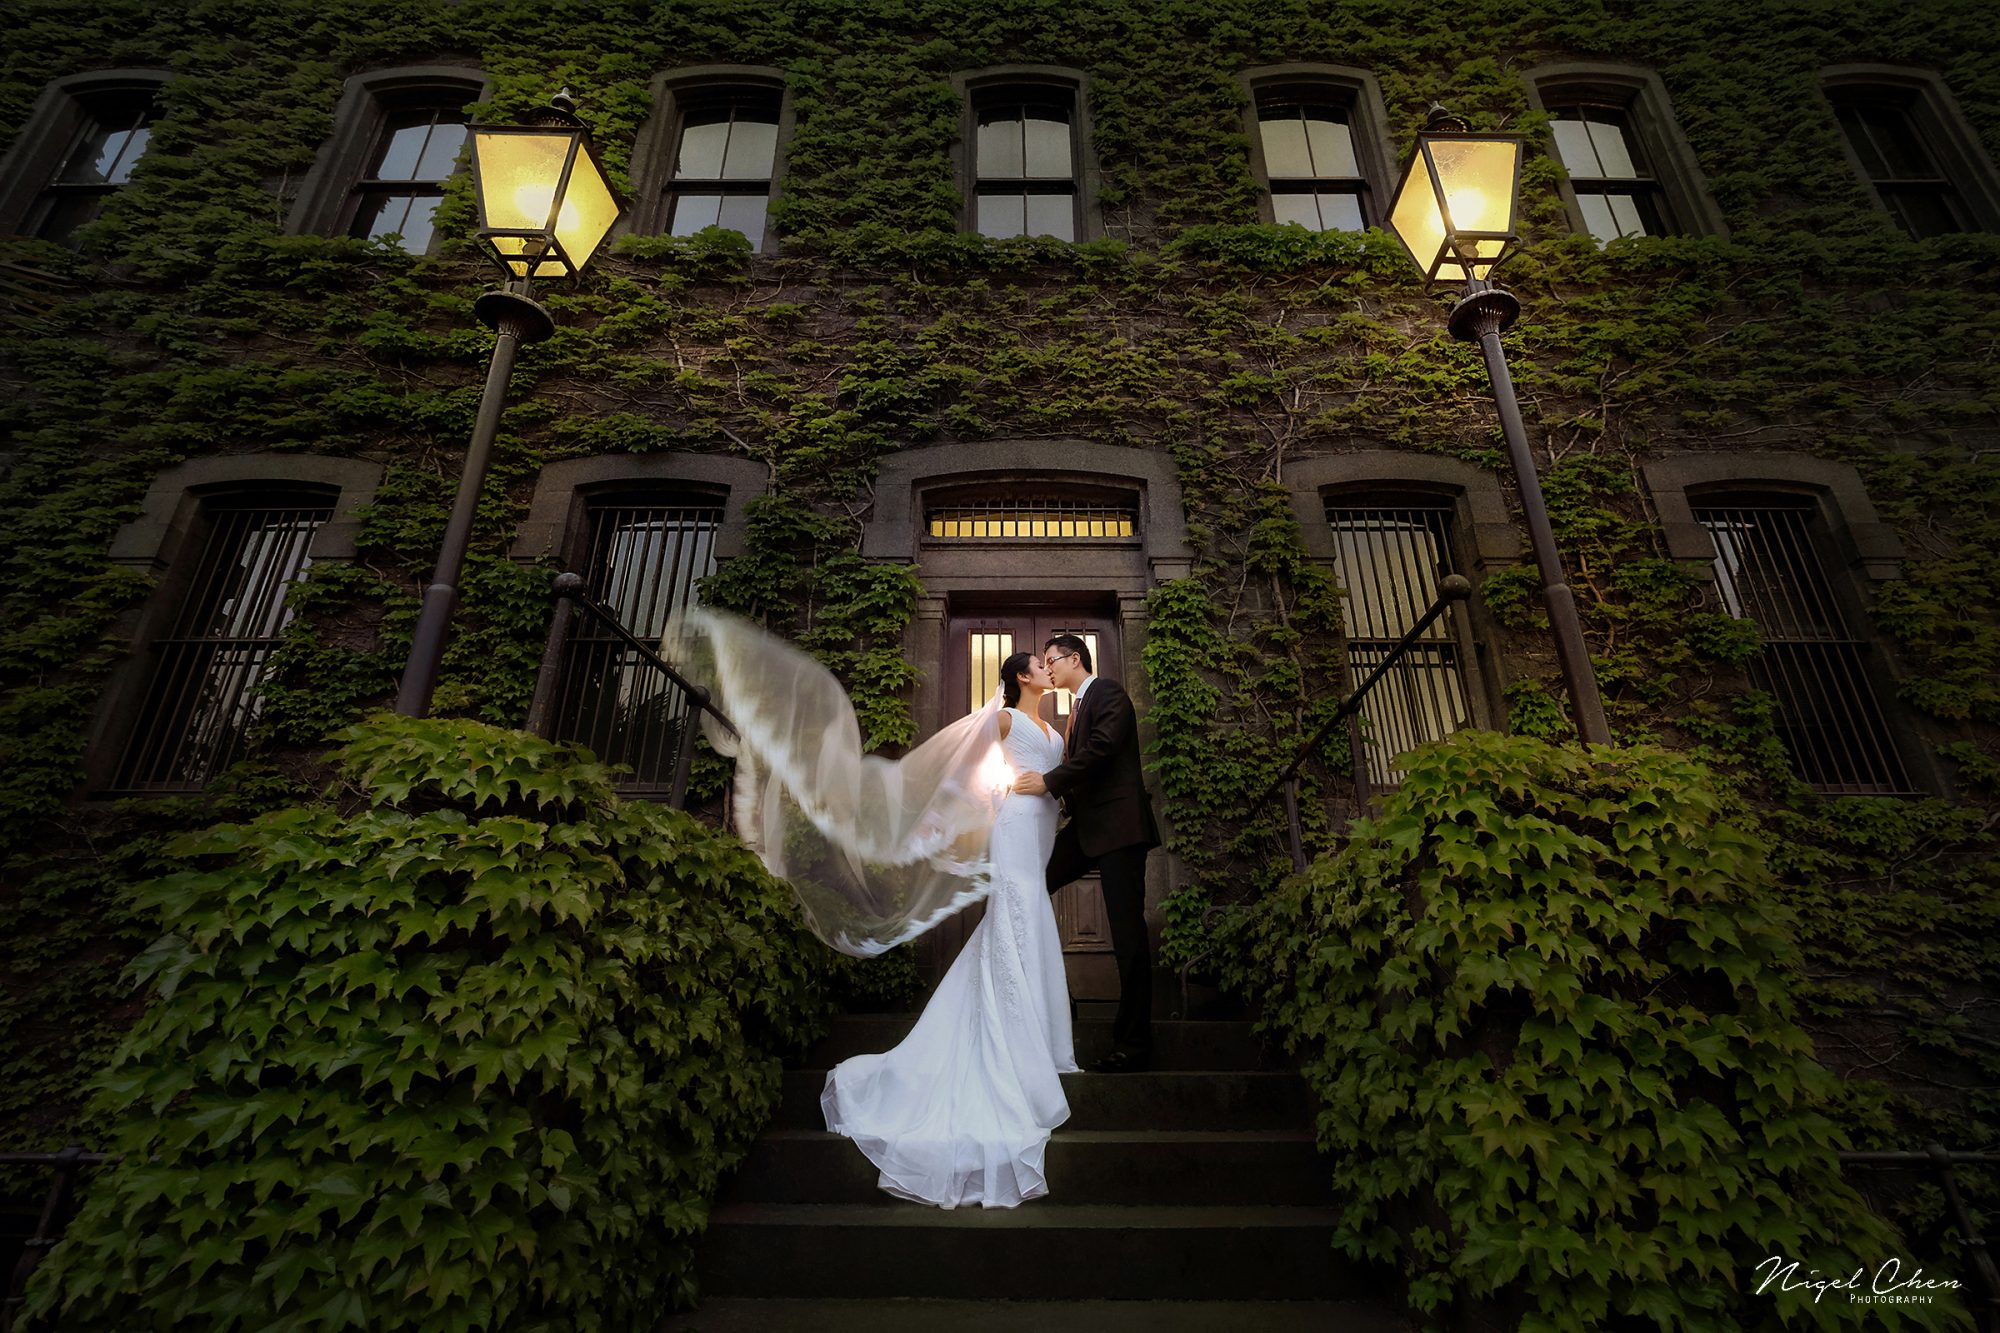 Pre-wedding photography by Nigel Chen Photography.